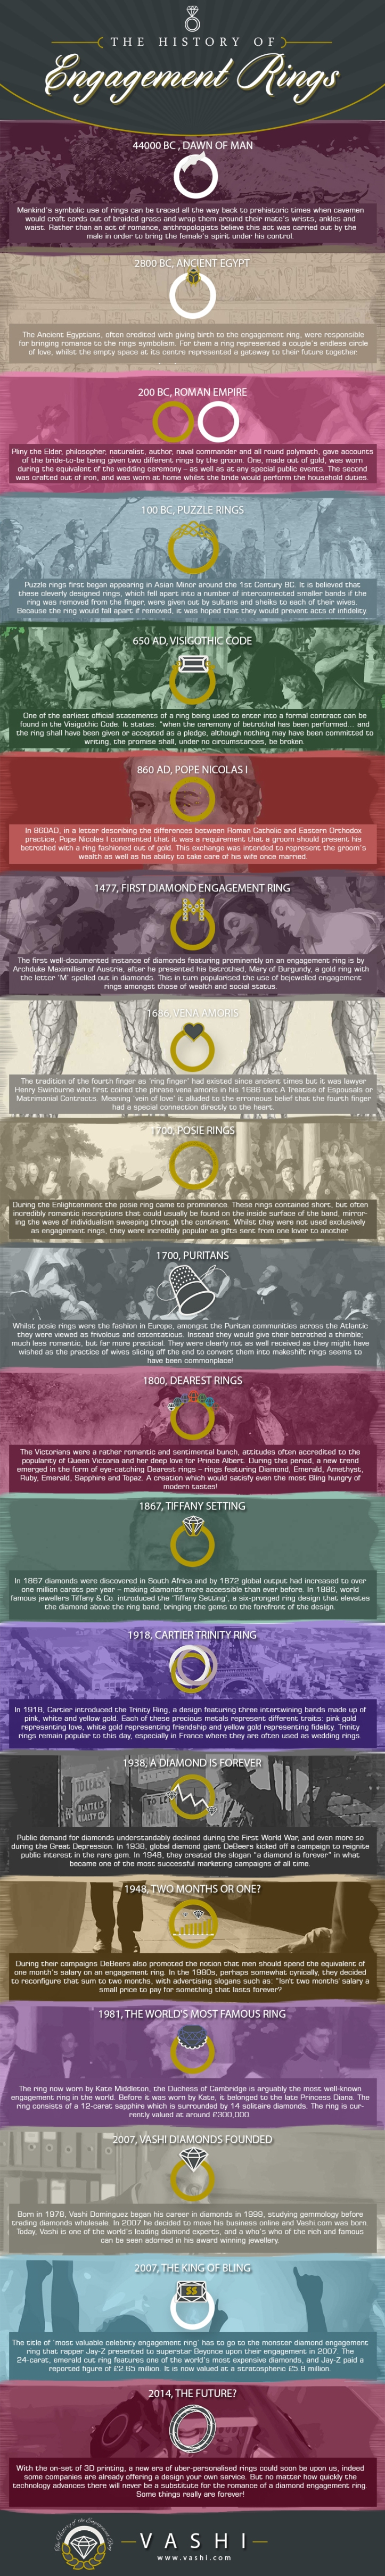 History-of-Engagement-ringsV1